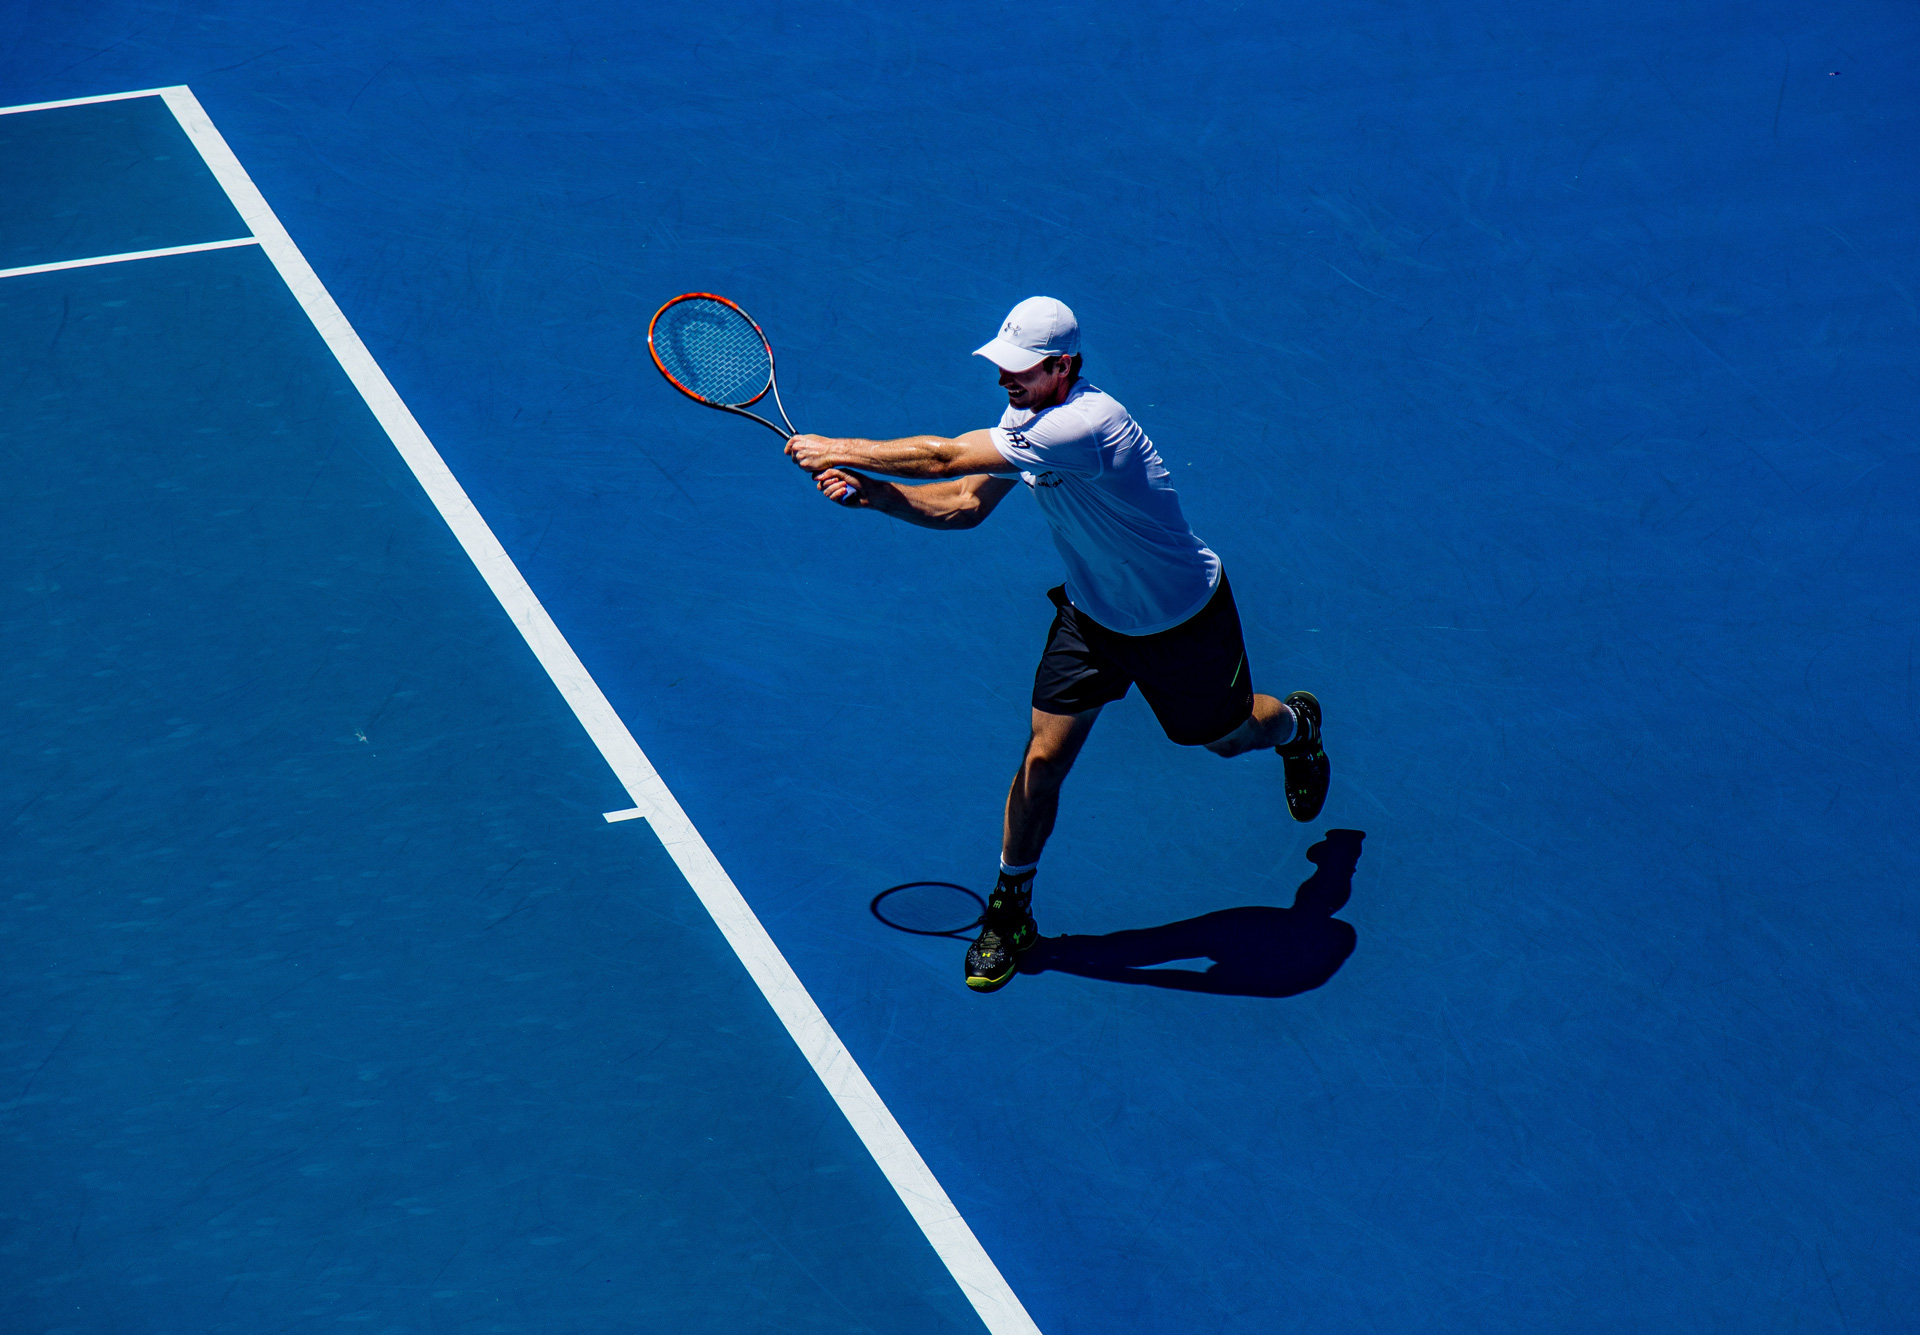 6.-Mastercard-Australian-Open_Player.jpg